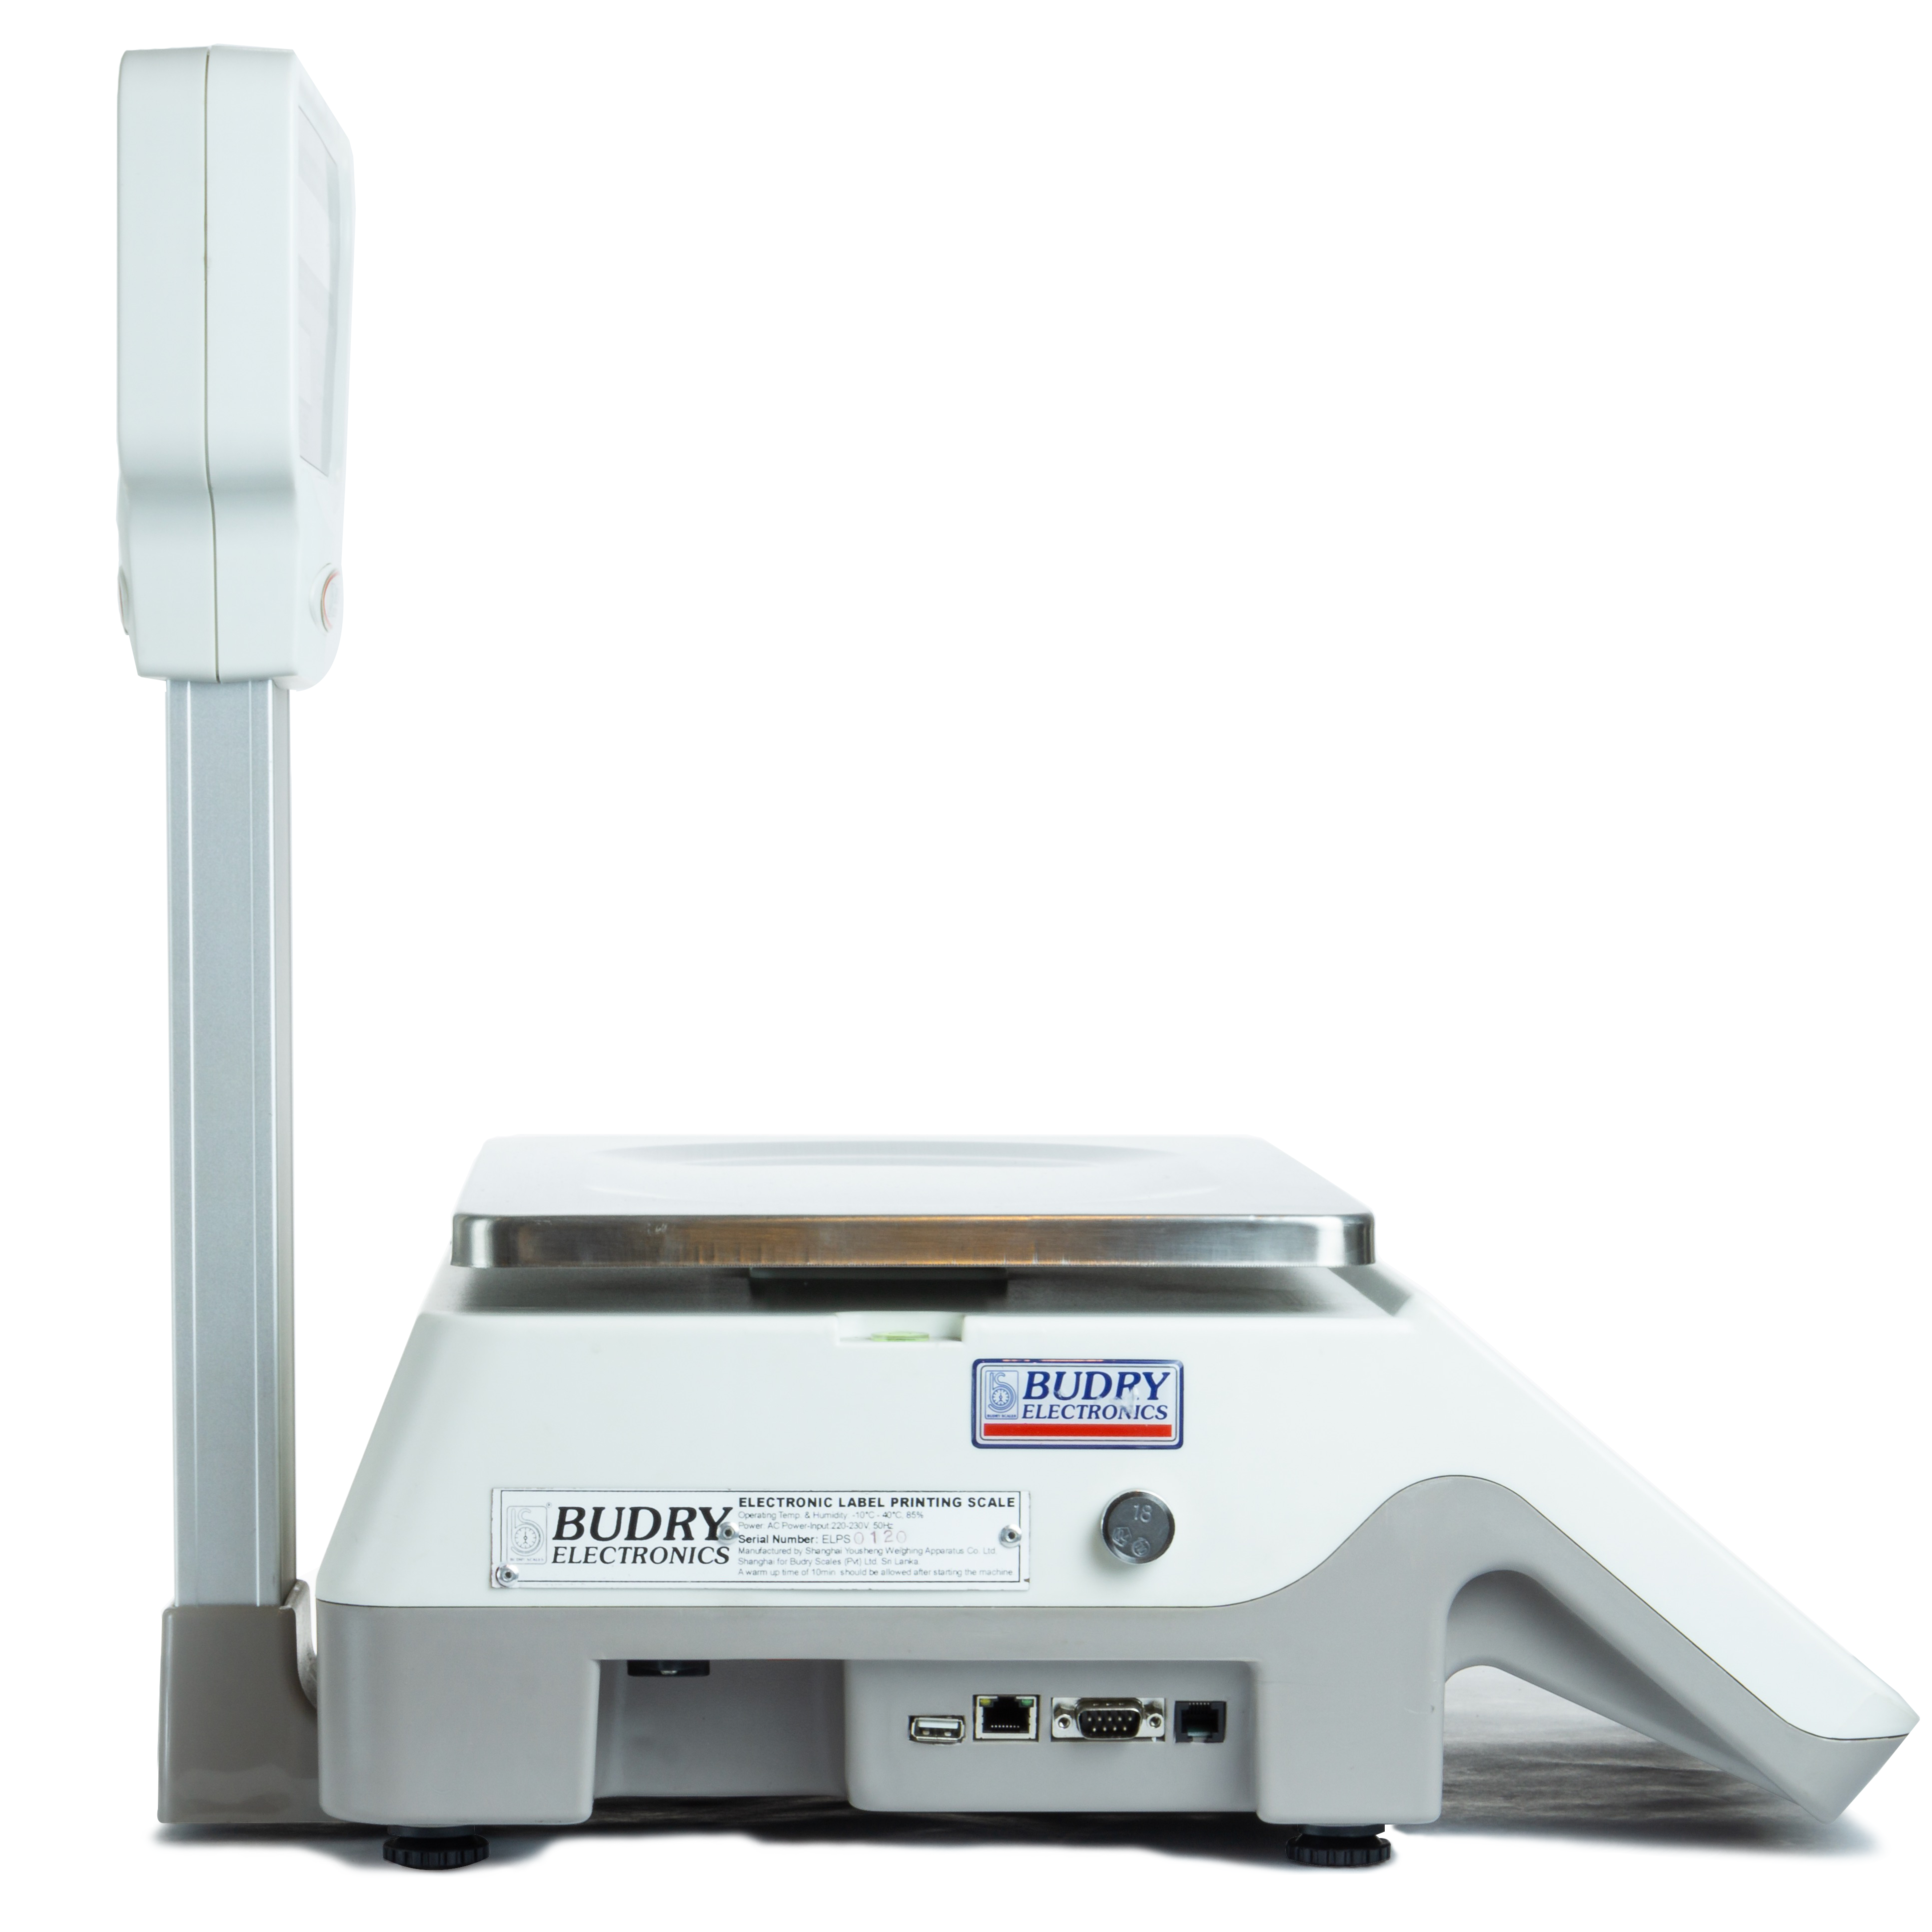 Abd86 15kg Electronic Label Printing Scale Budry Scales